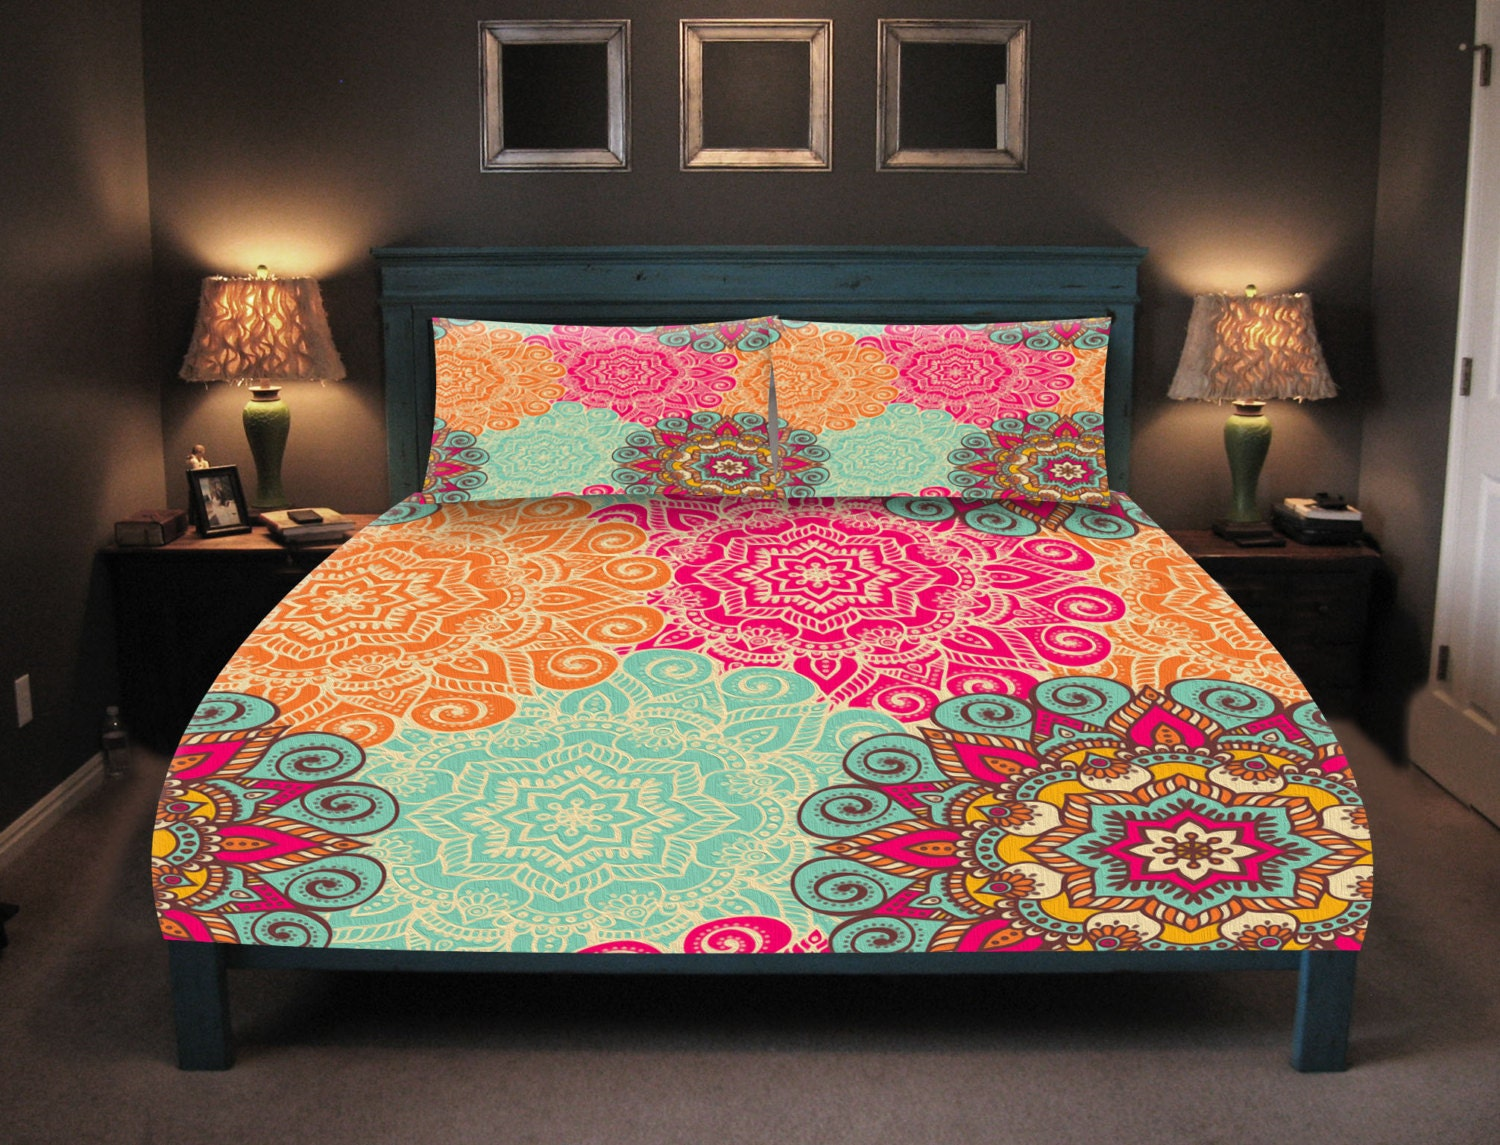 Boho Chic Bedding Duvet Cover Set Coral Turquoise Pink